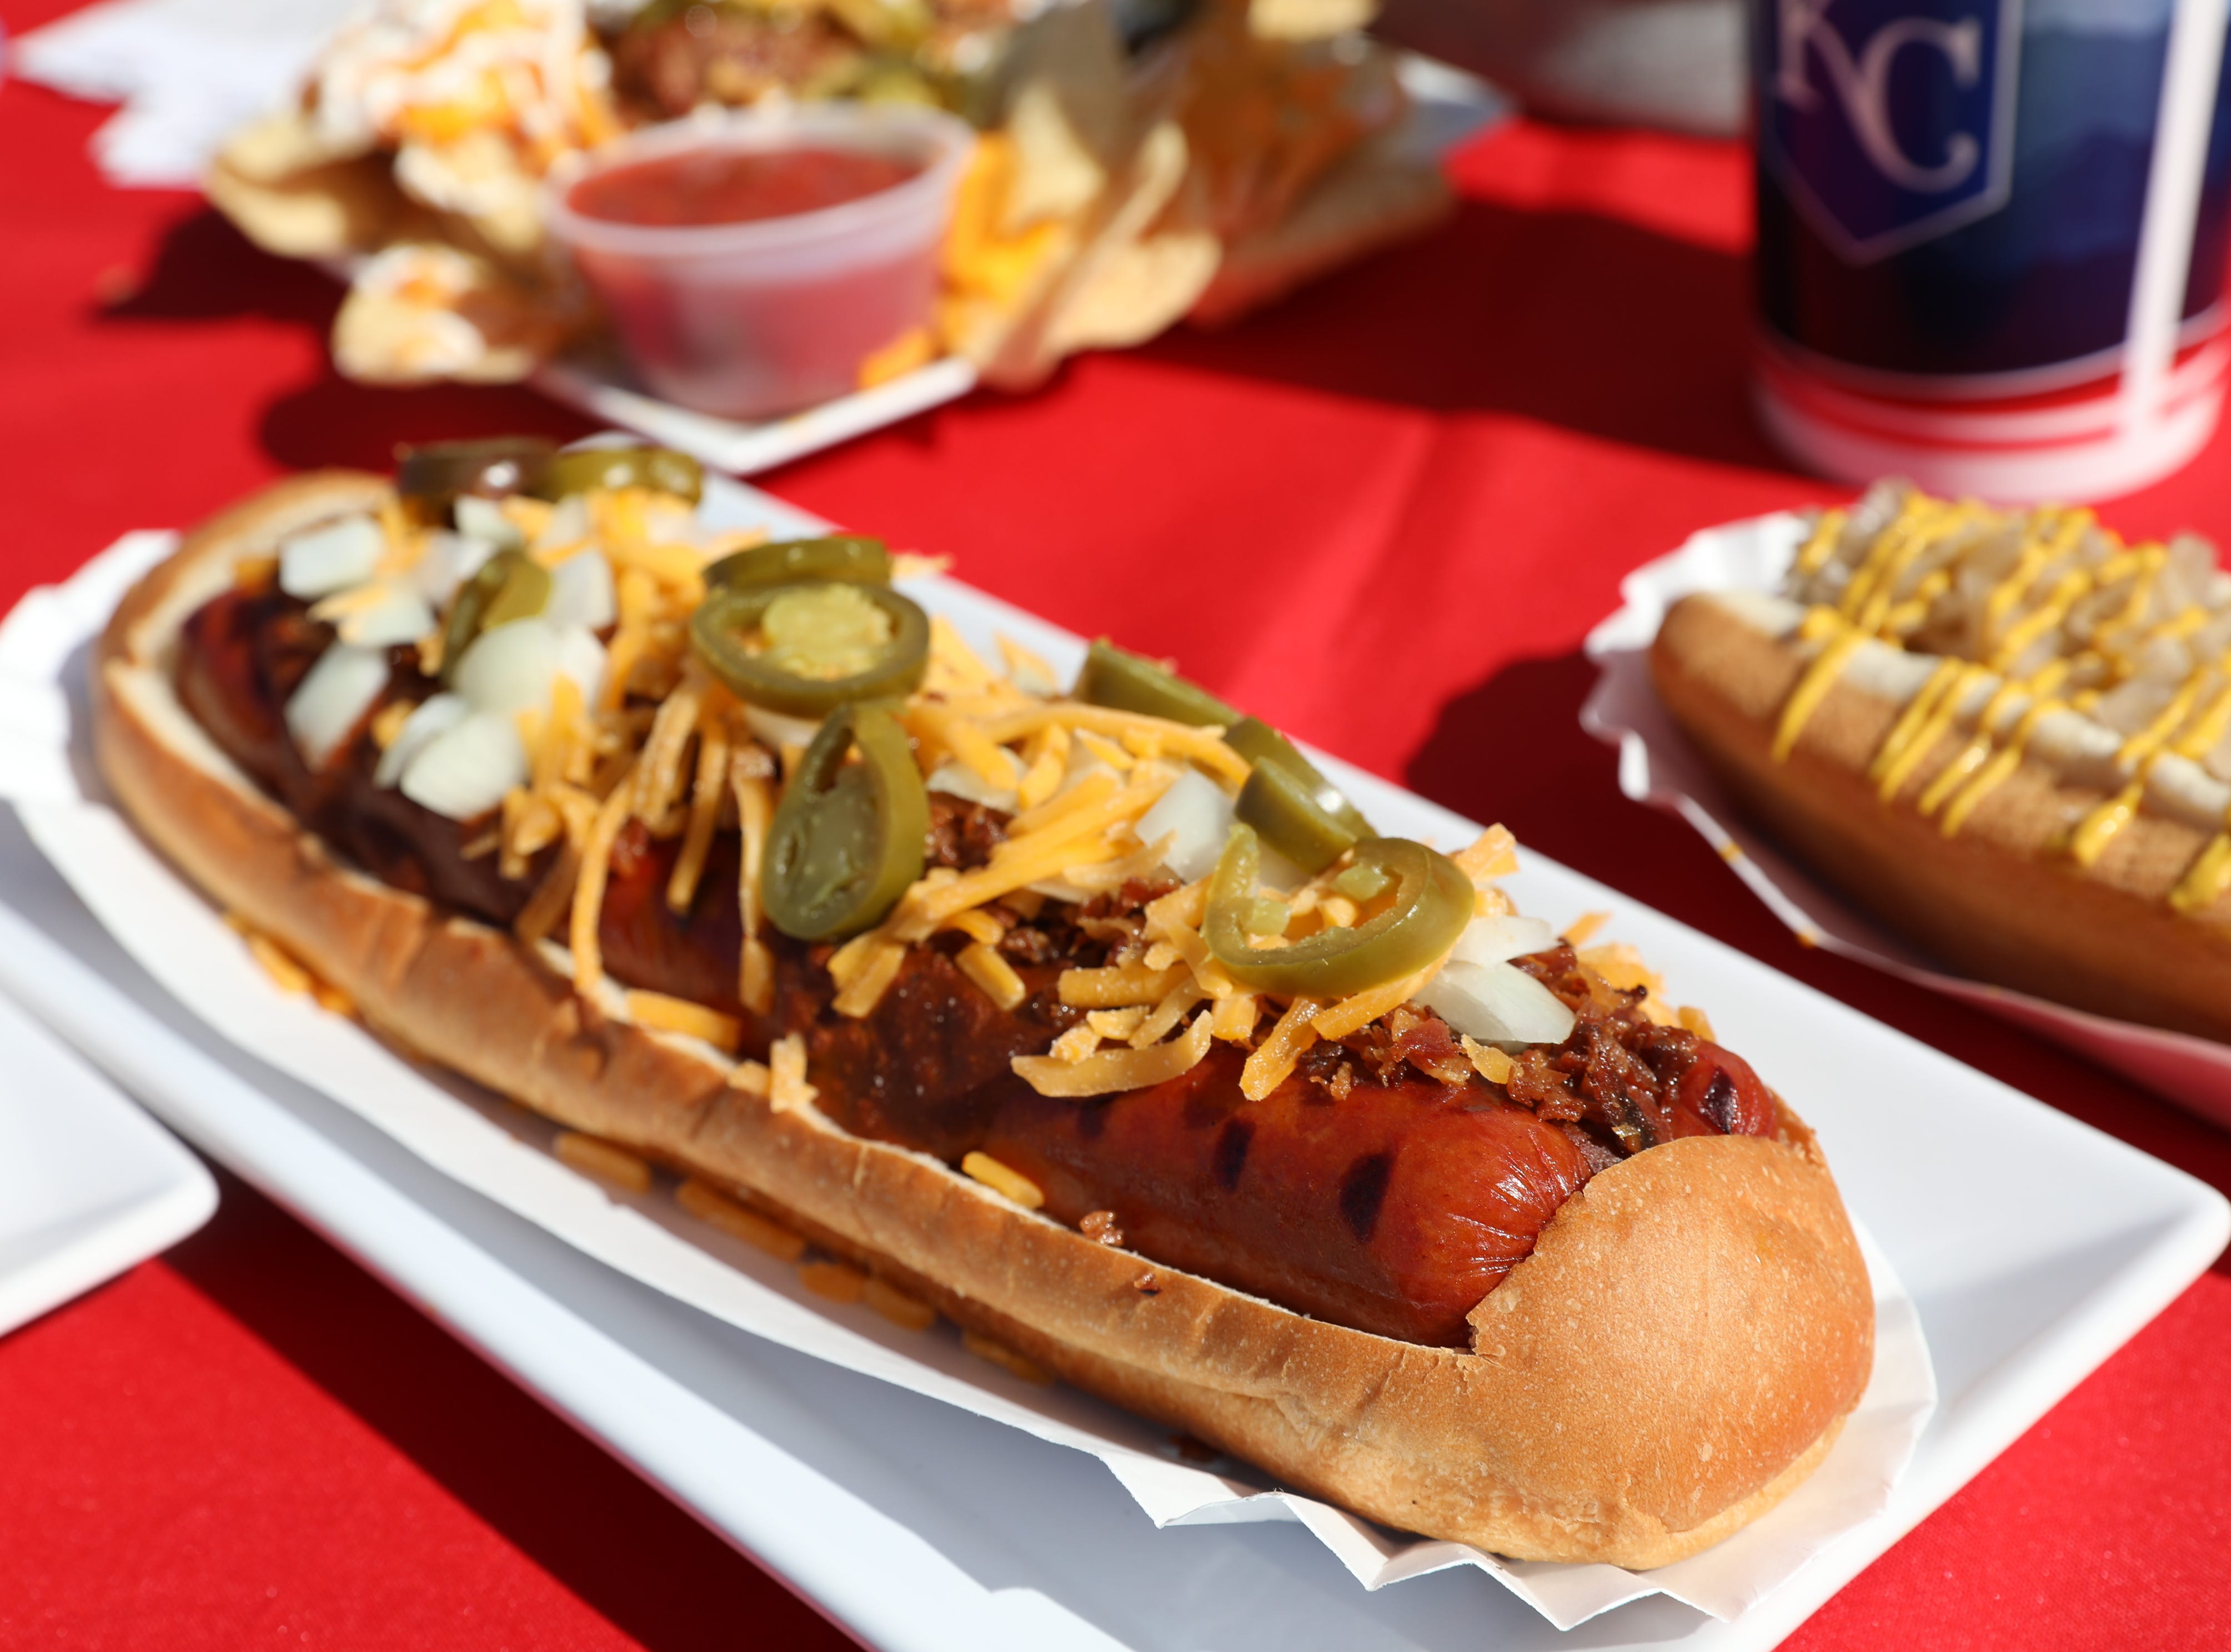 The Double Dog Dare You hotdog at Surprise Stadium.